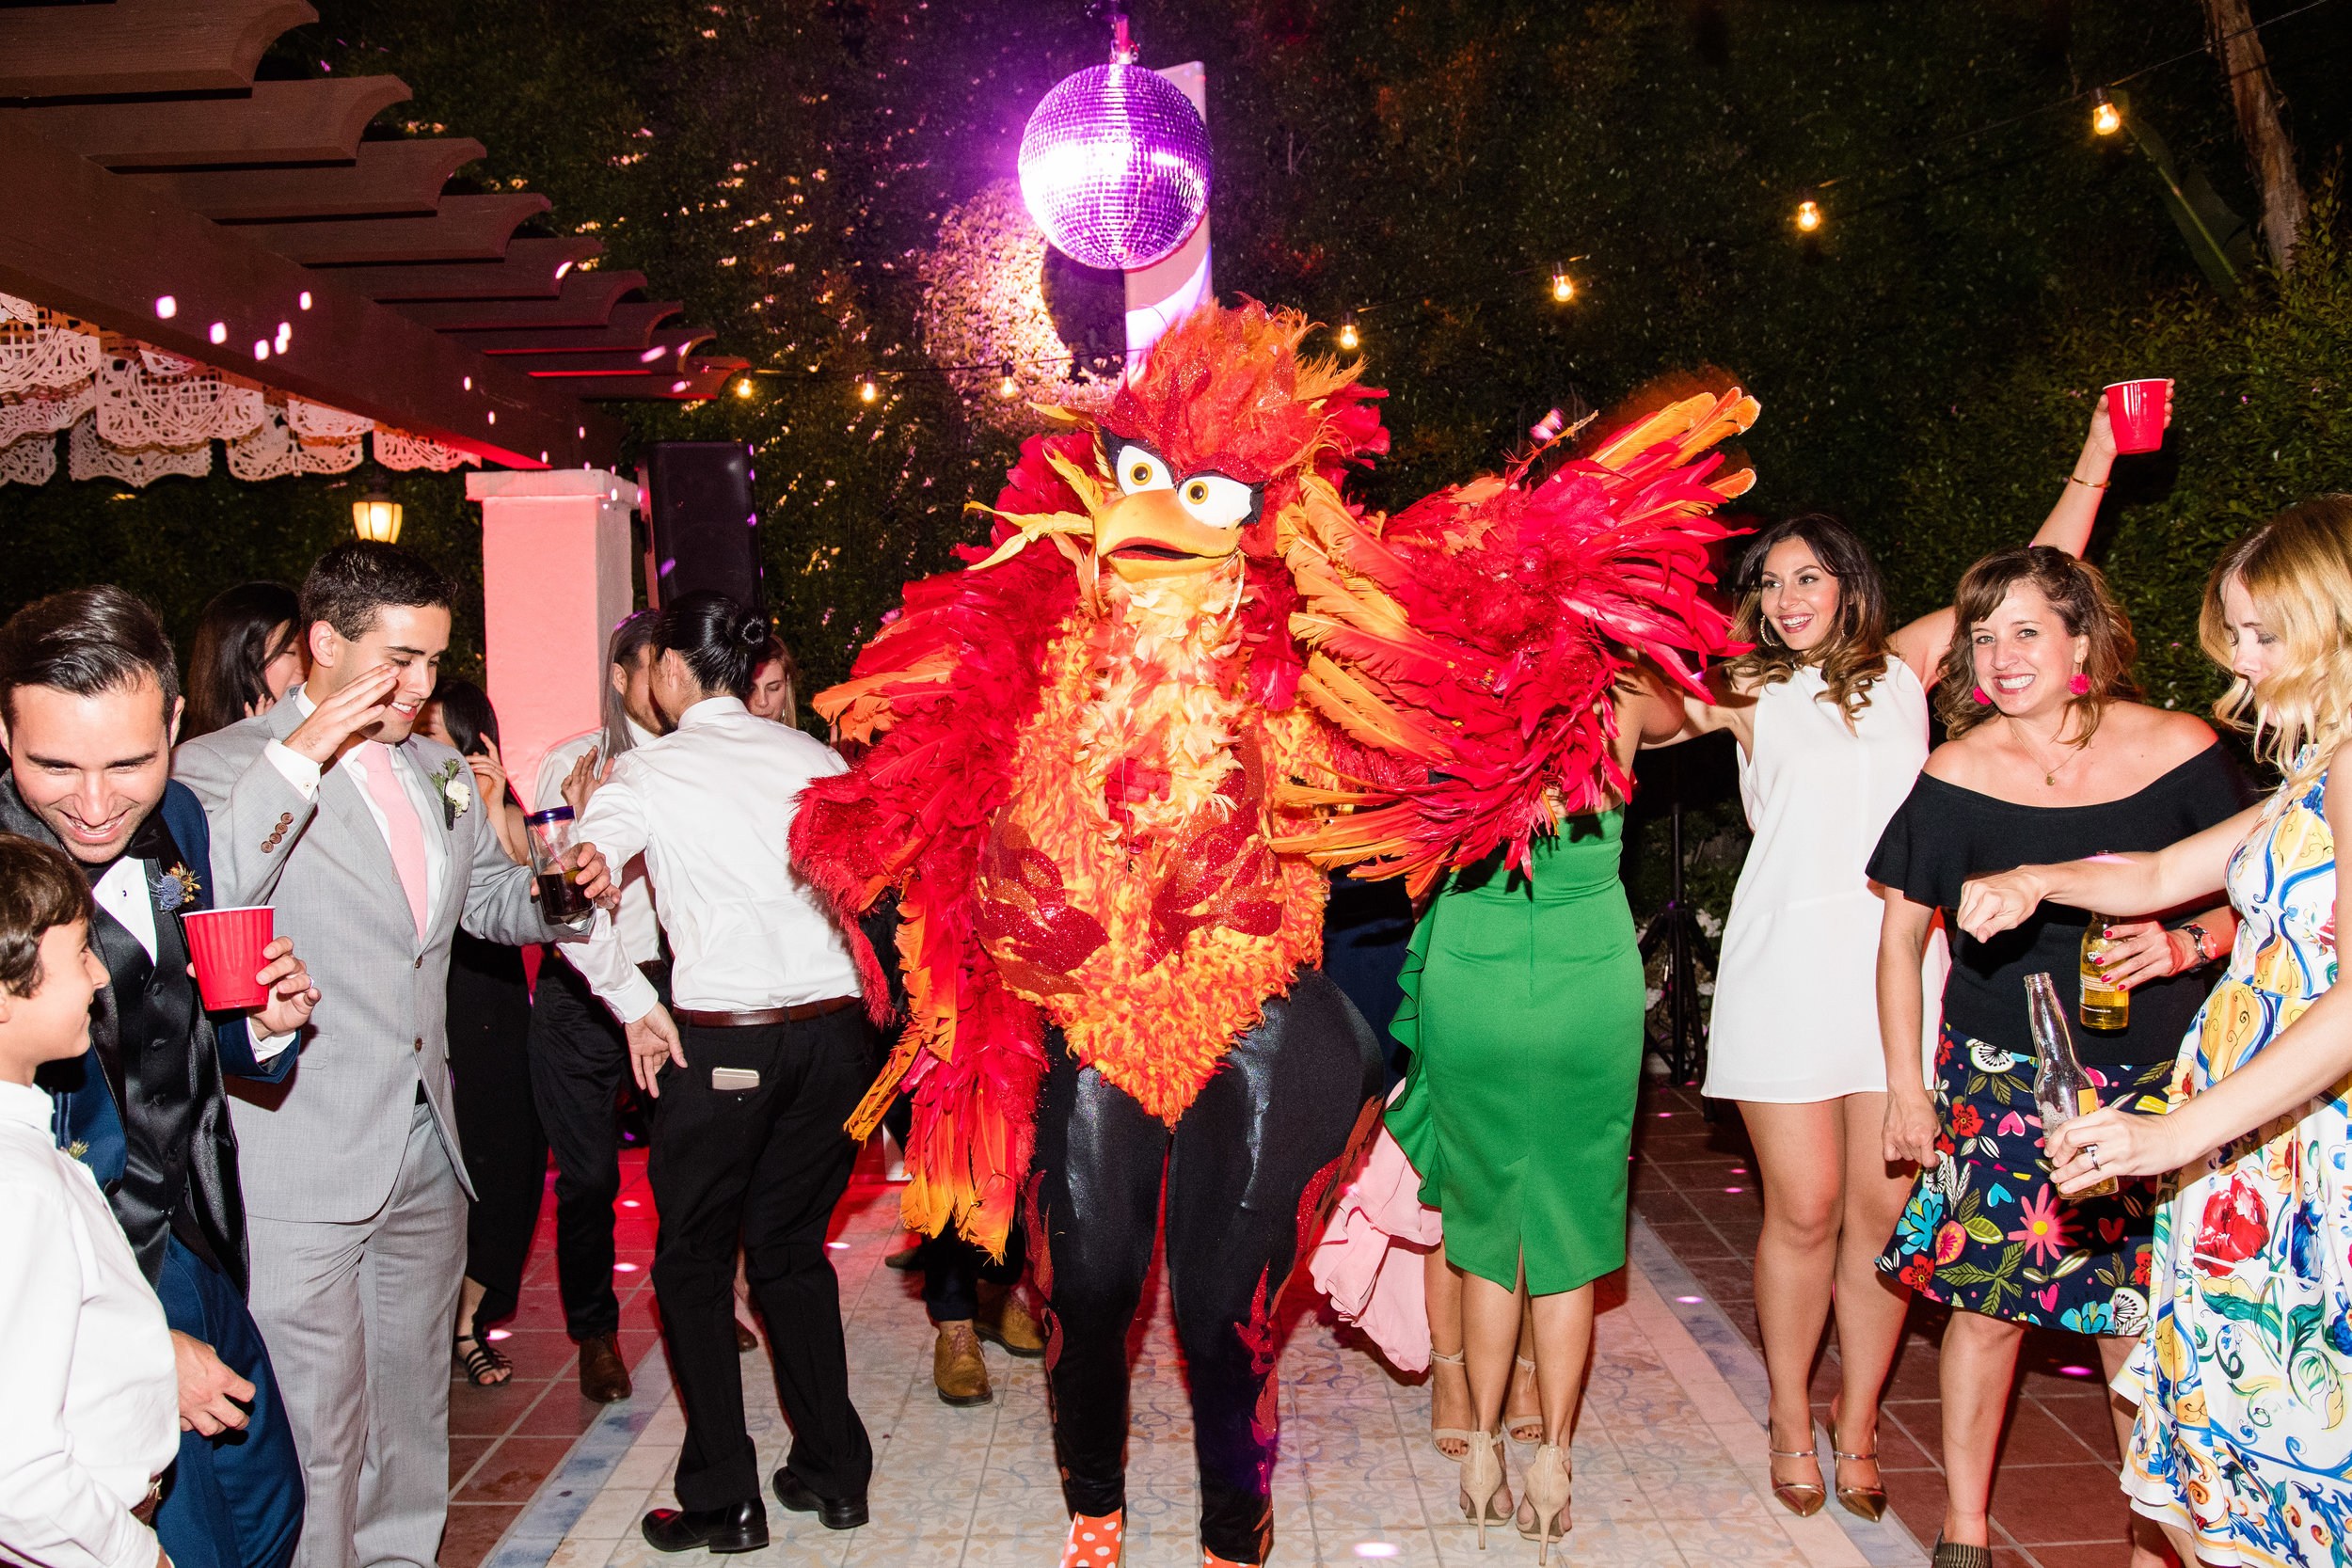 Vibrant Fiesta Backyard Wedding Reception miss fuego partying with guests.jpg